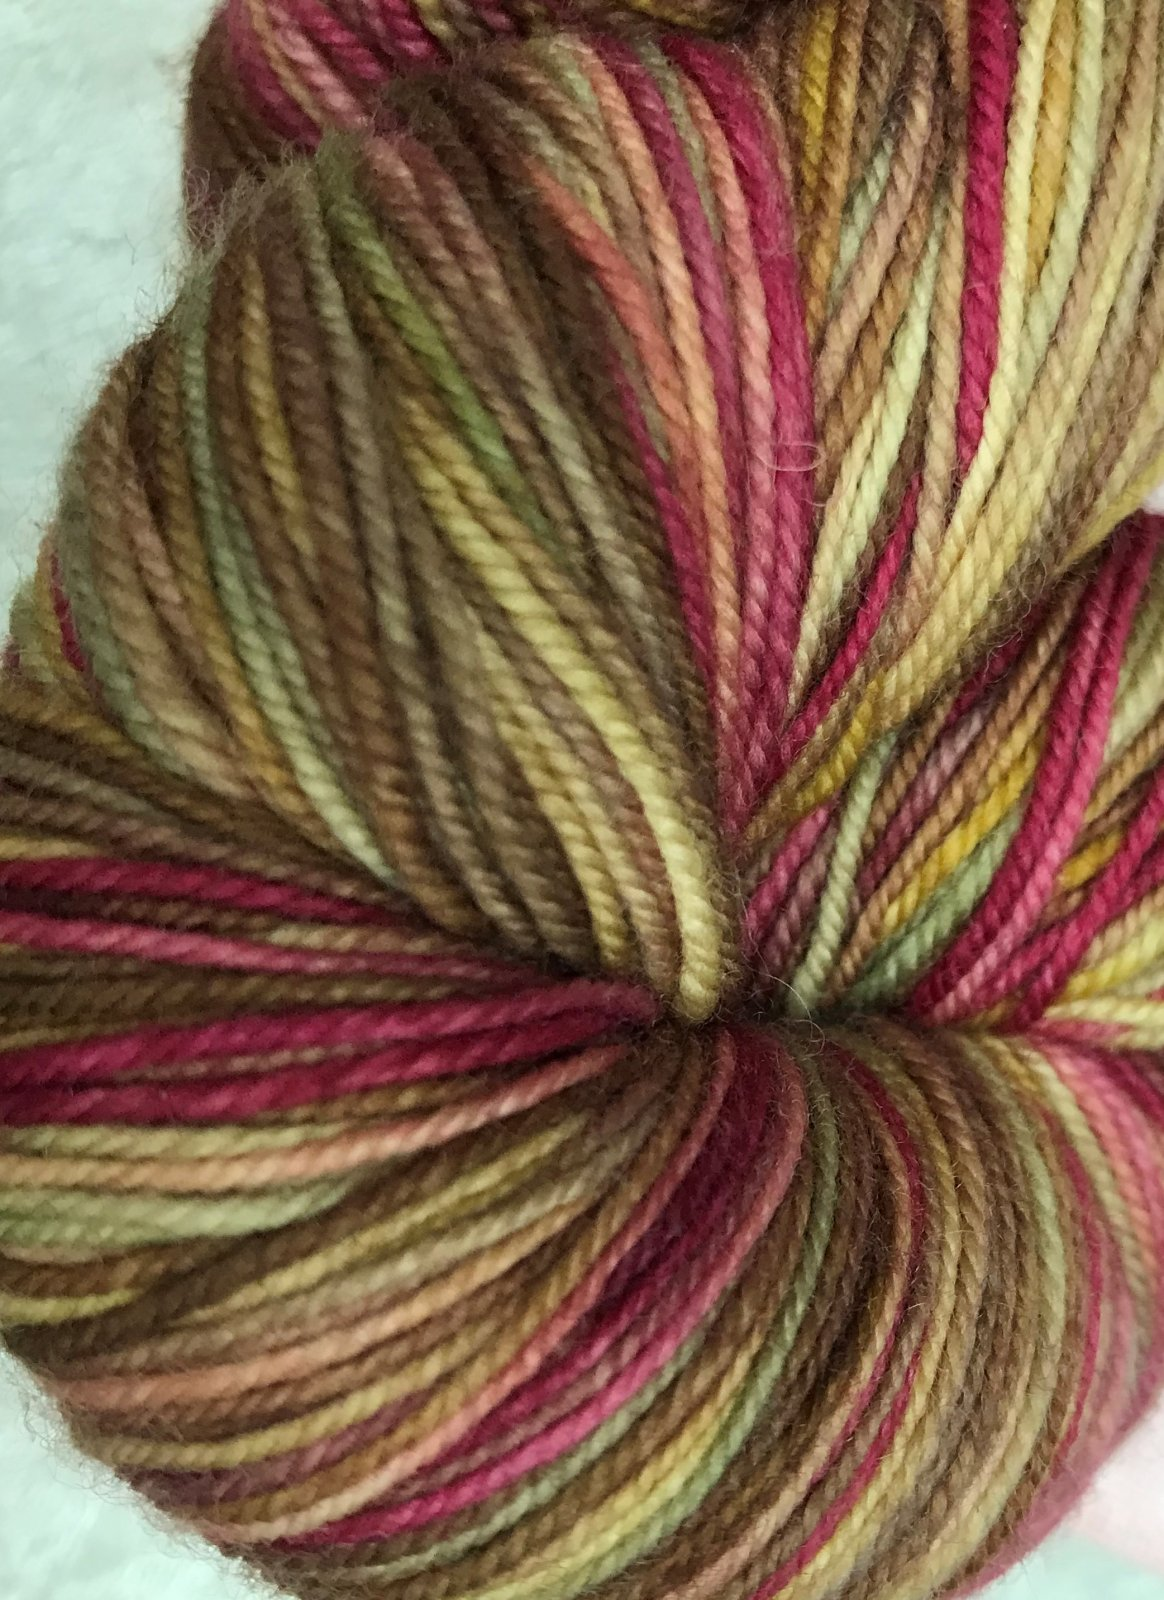 Into Autumn 215 , Lace Merino Superwash extra fine 430y, 6.5sts=1on 3US